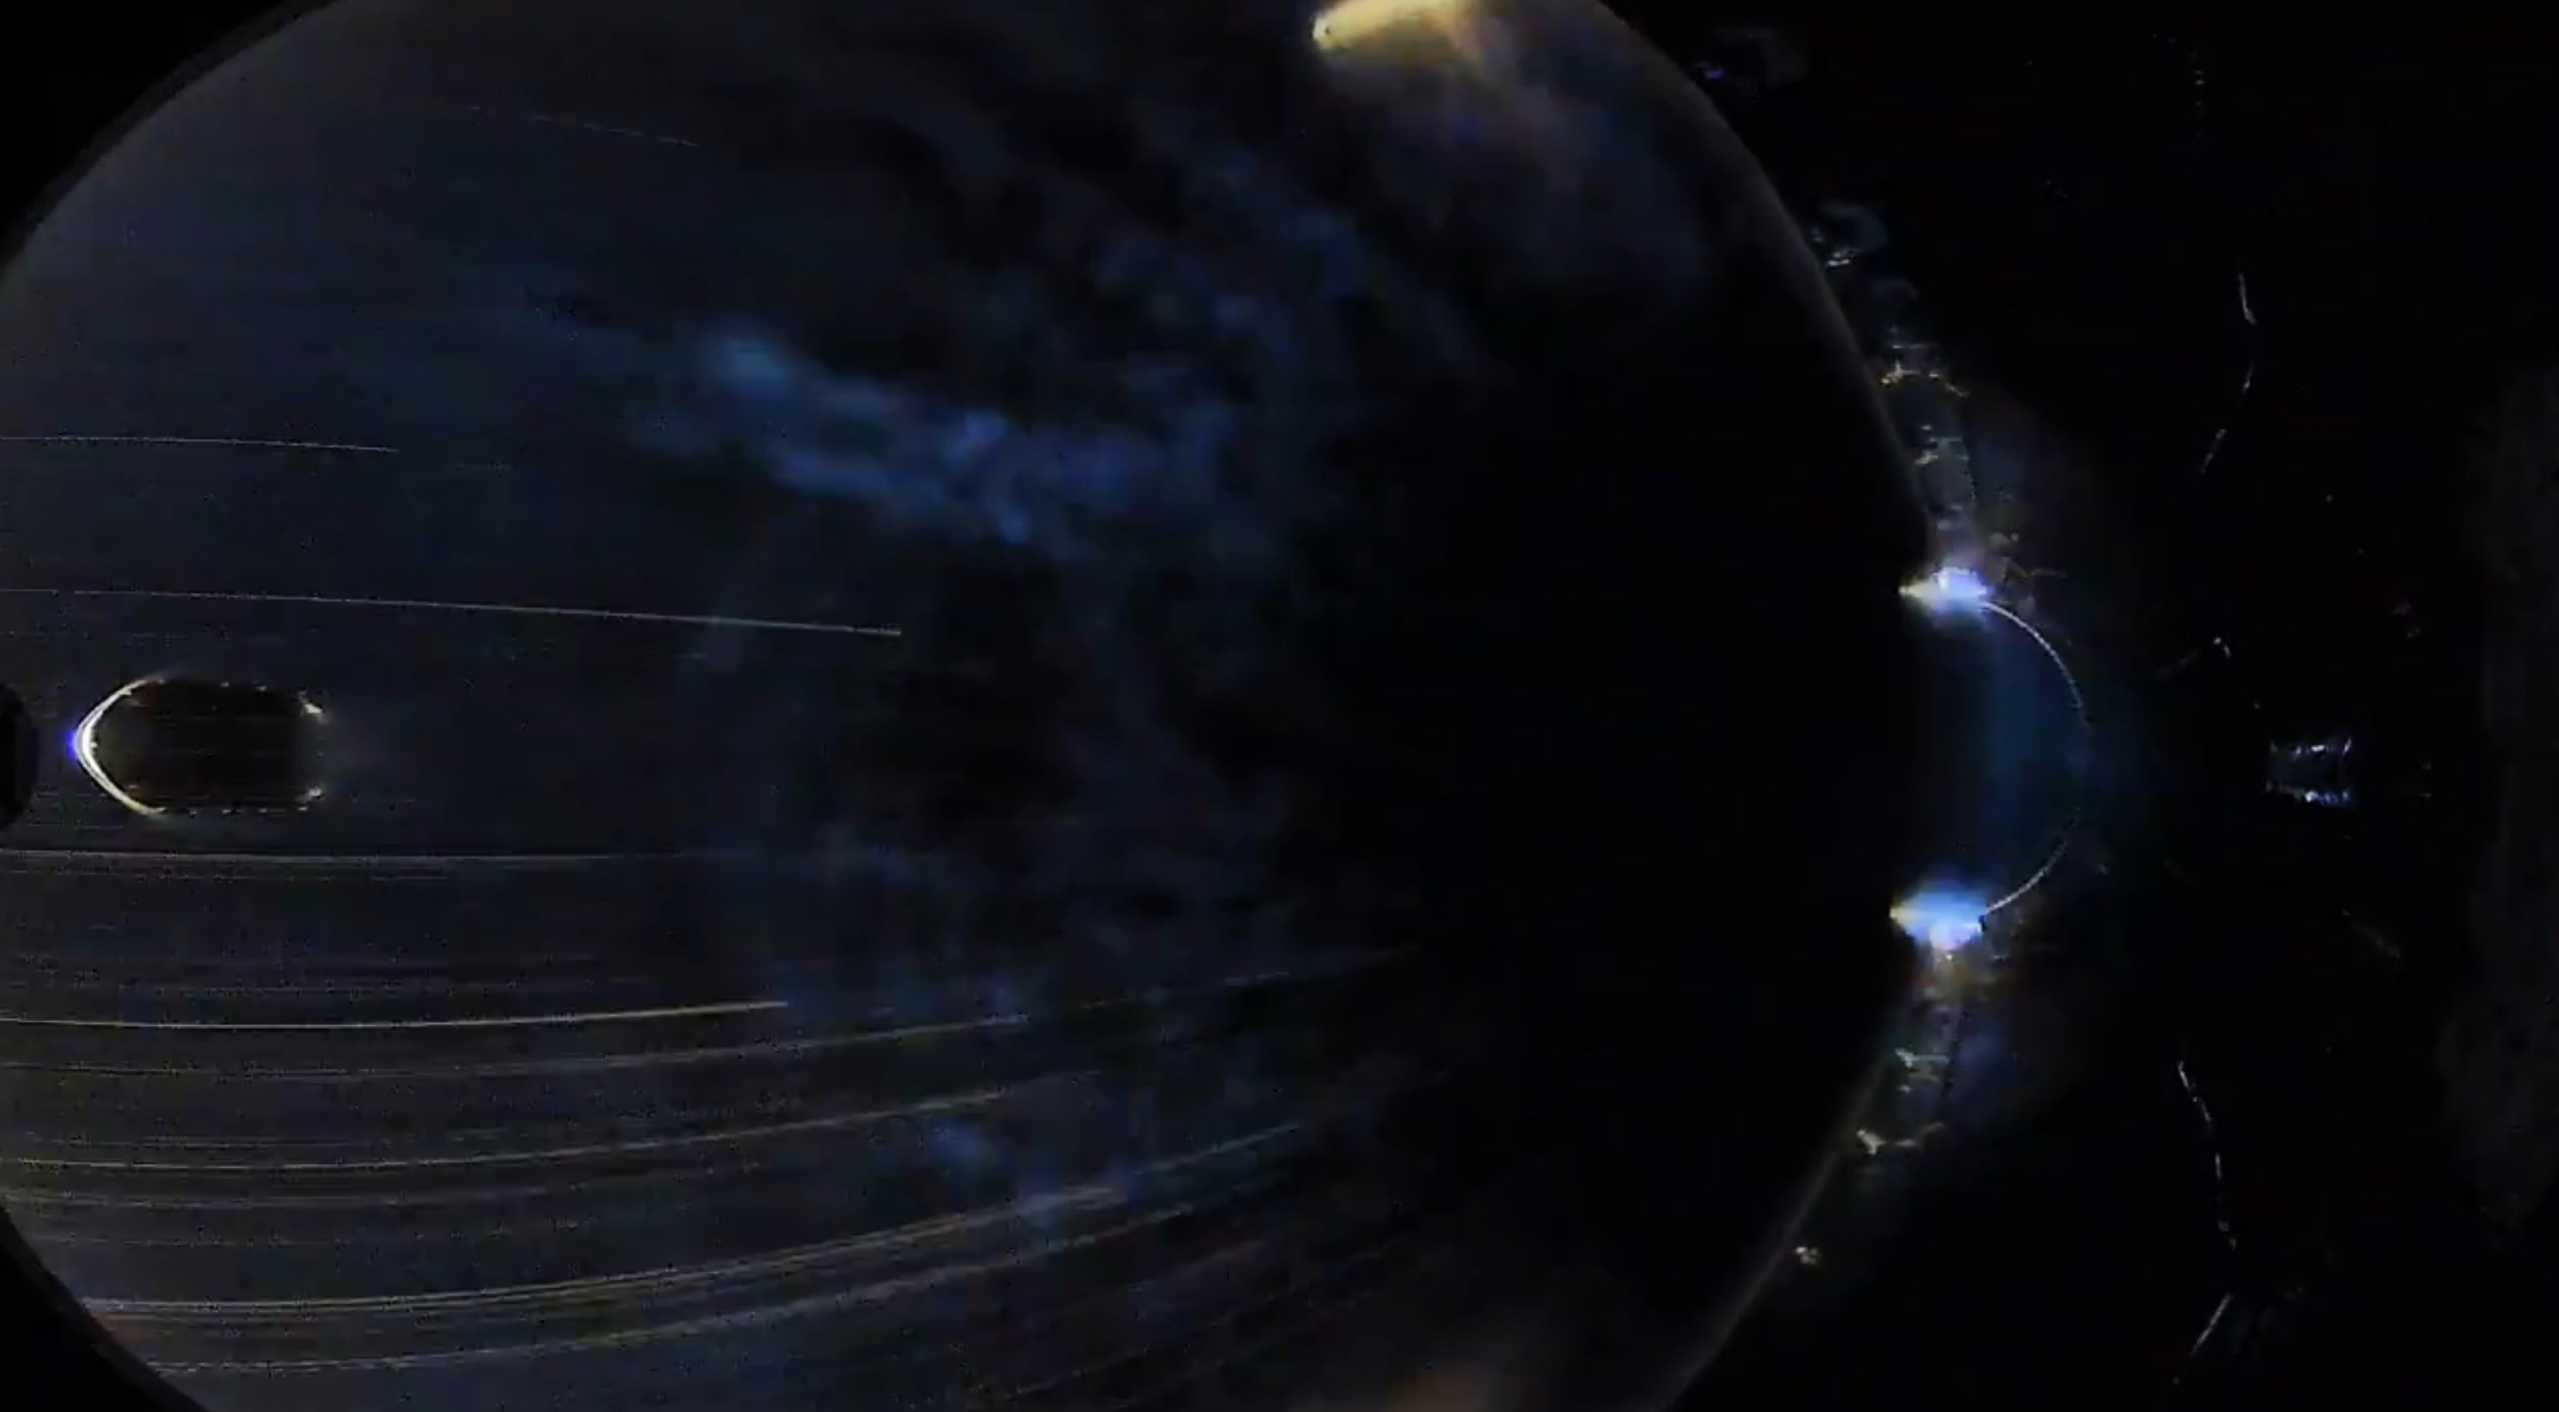 Starlink V1 L7 F9 S2 fairing deploy 060320 (SpaceX) 5 (c)